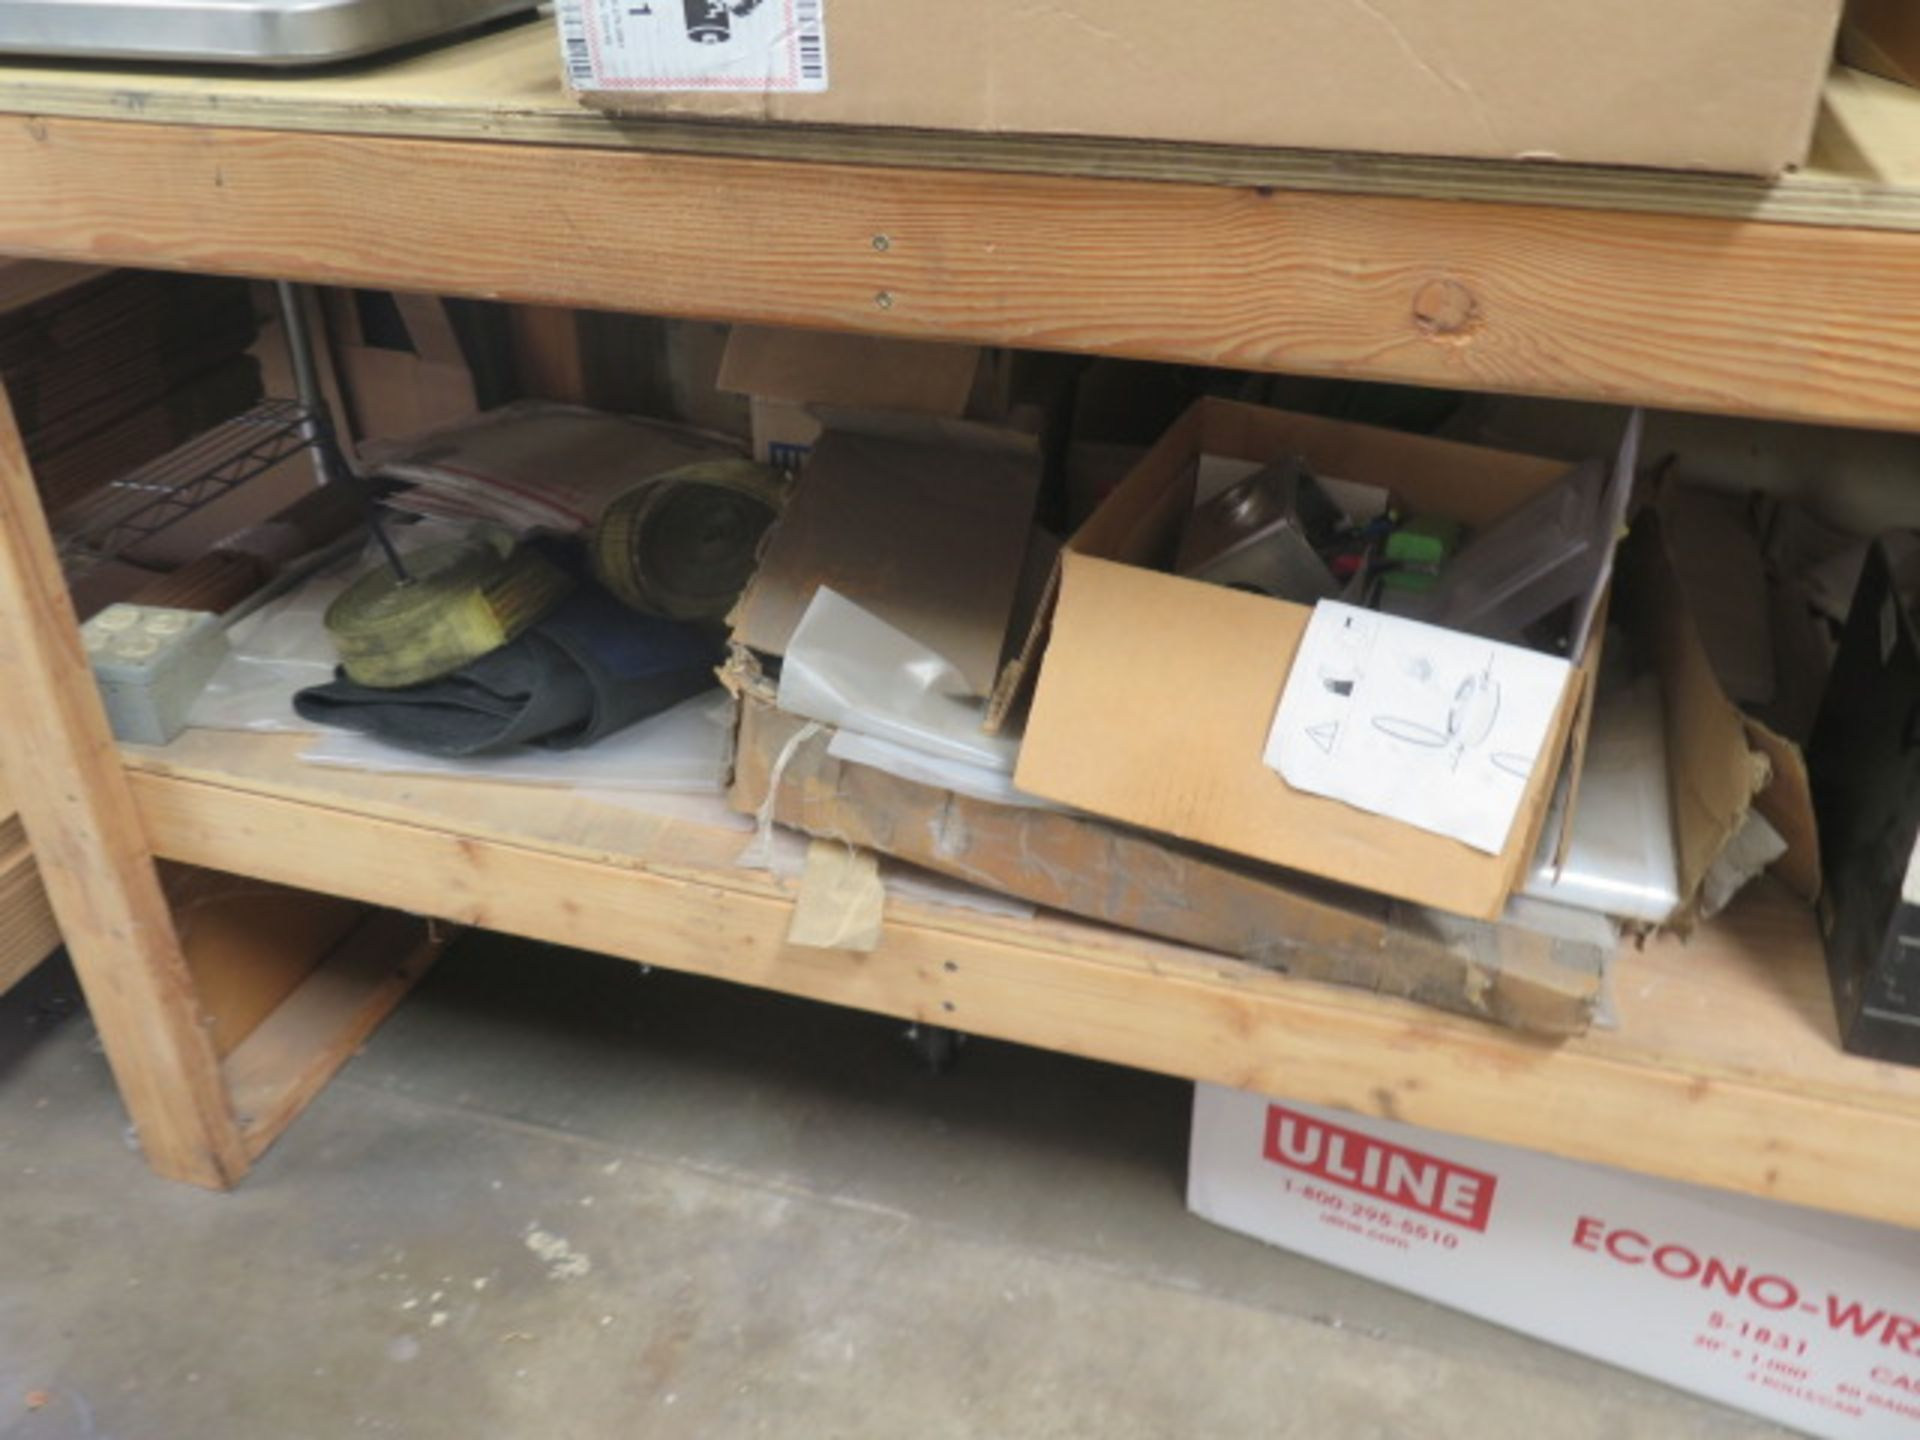 Shipping Supplies and Table (SOLD AS-IS - NO WARRANTY) - Image 2 of 5